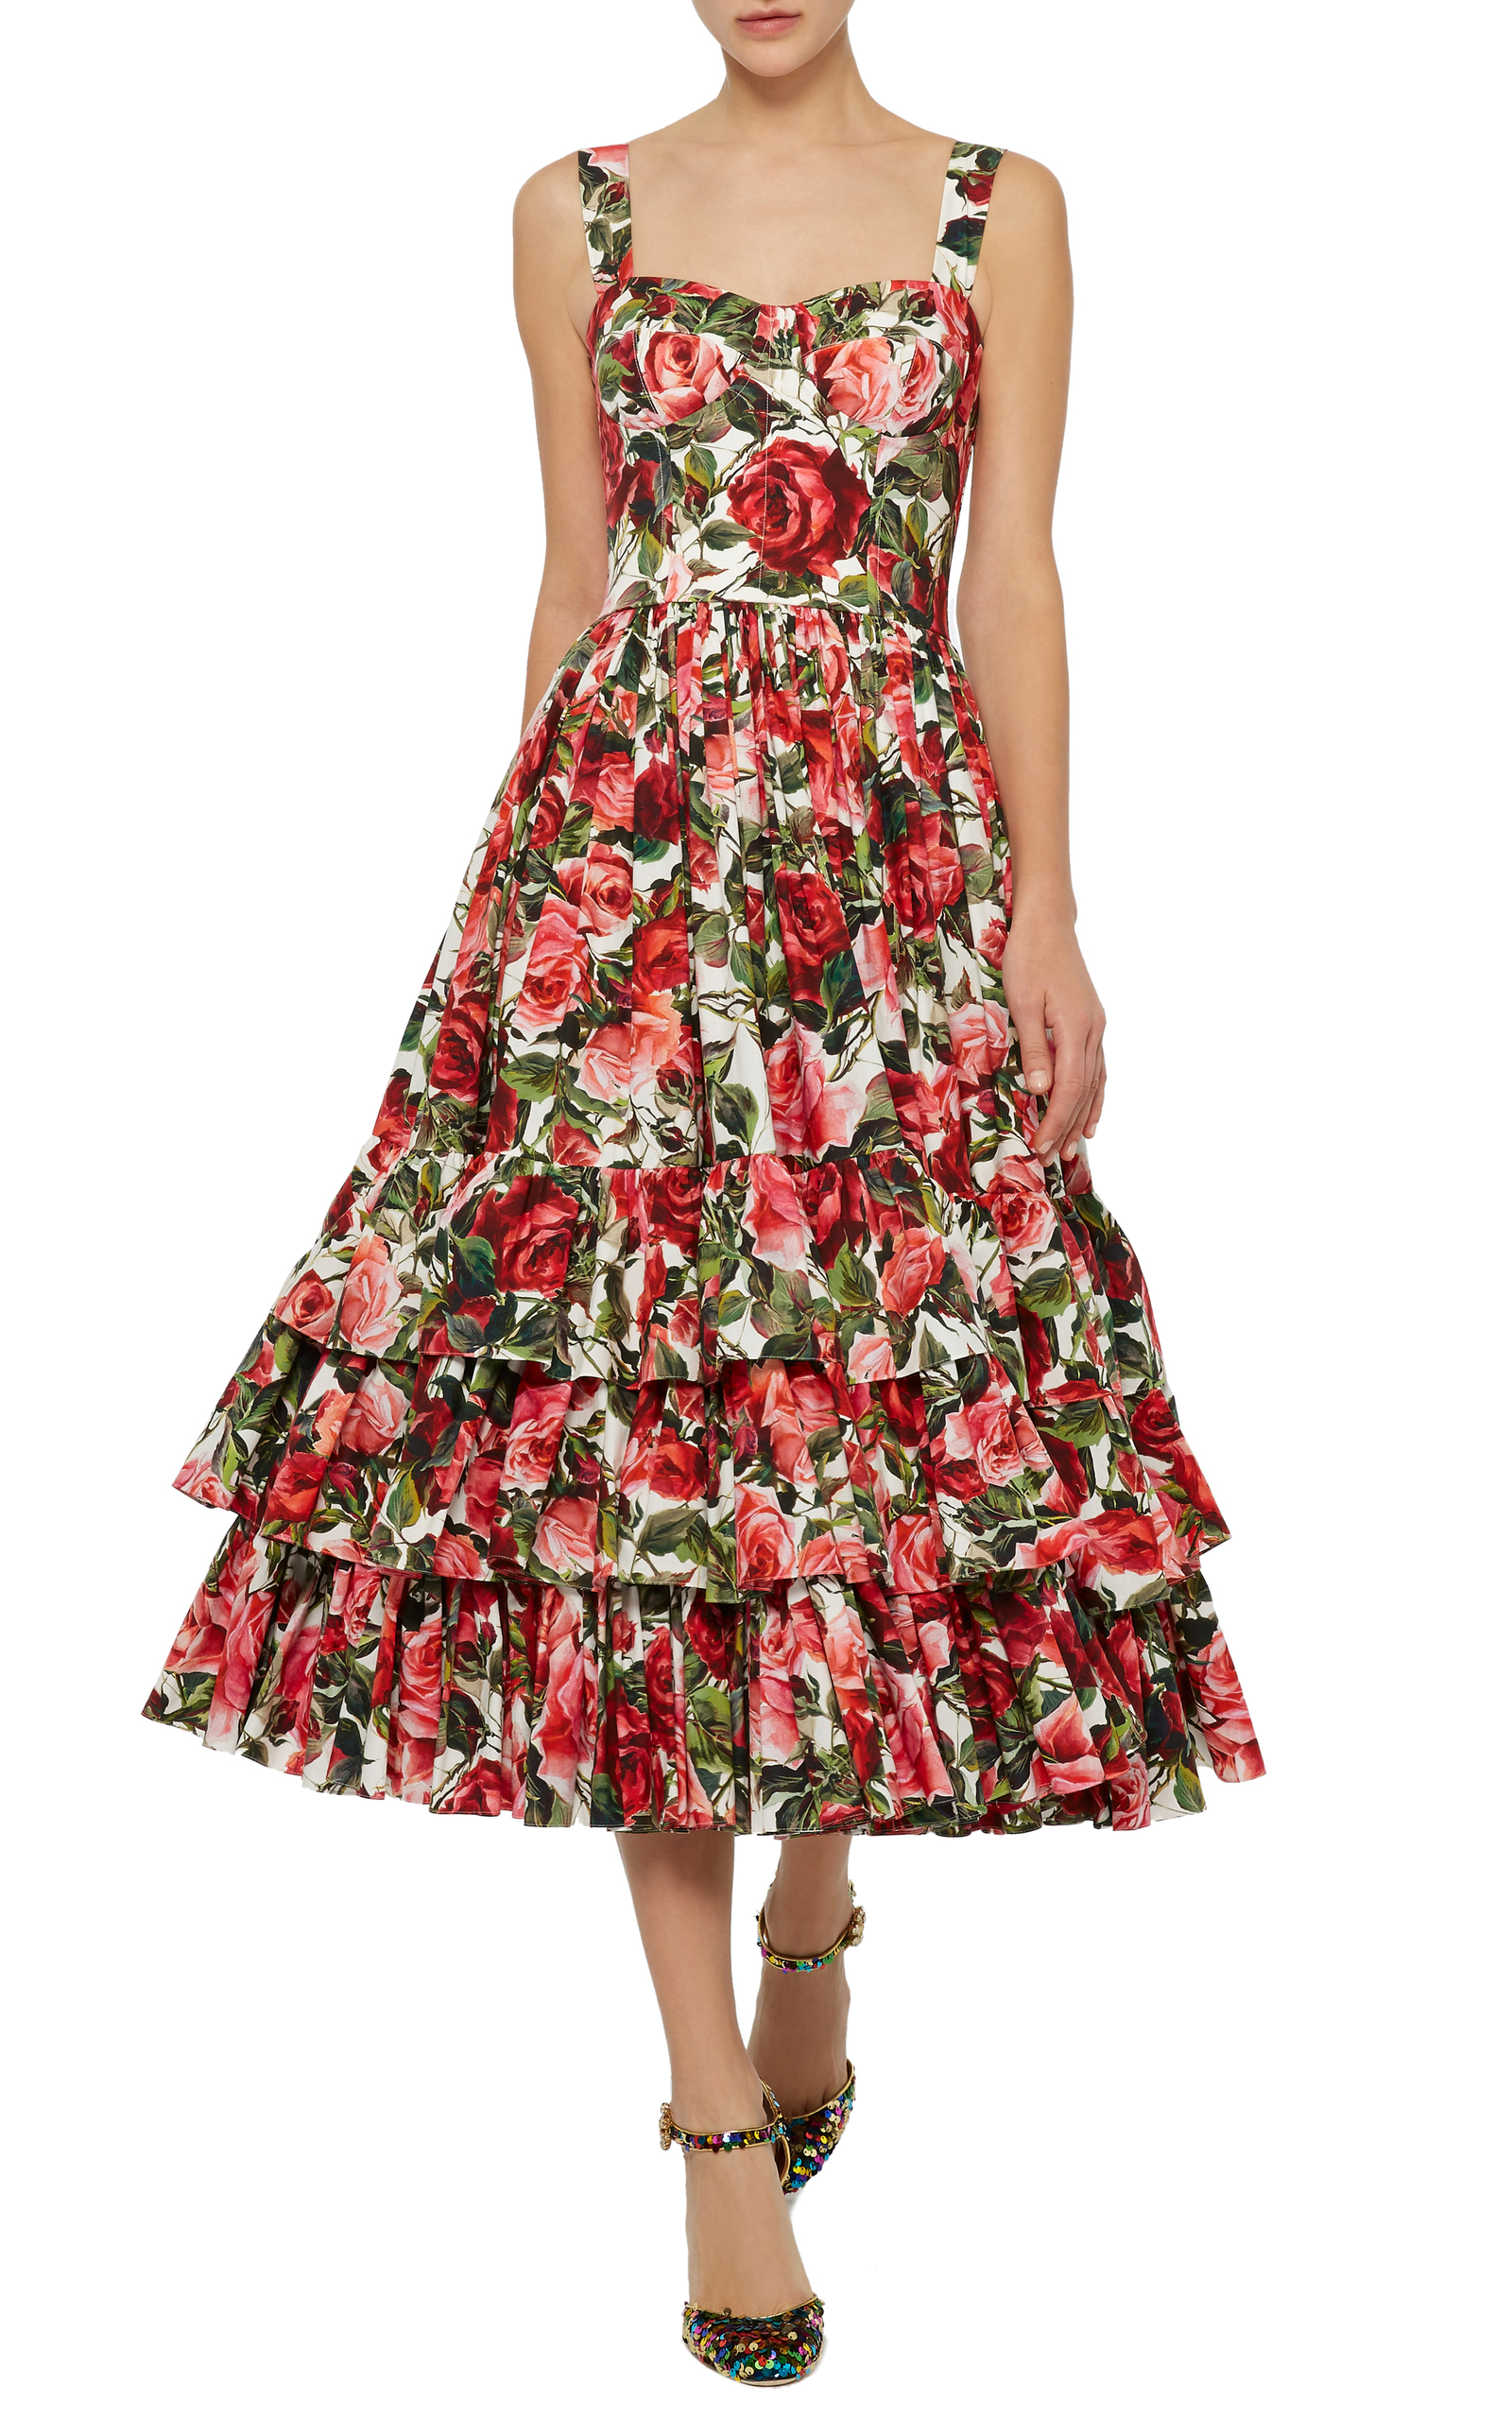 Loading. Loading. Loading. Loading. FULL SCREEN. Click Product to Zoom.  Dolce & GabbanaRose Print Poplin Bustier Dress